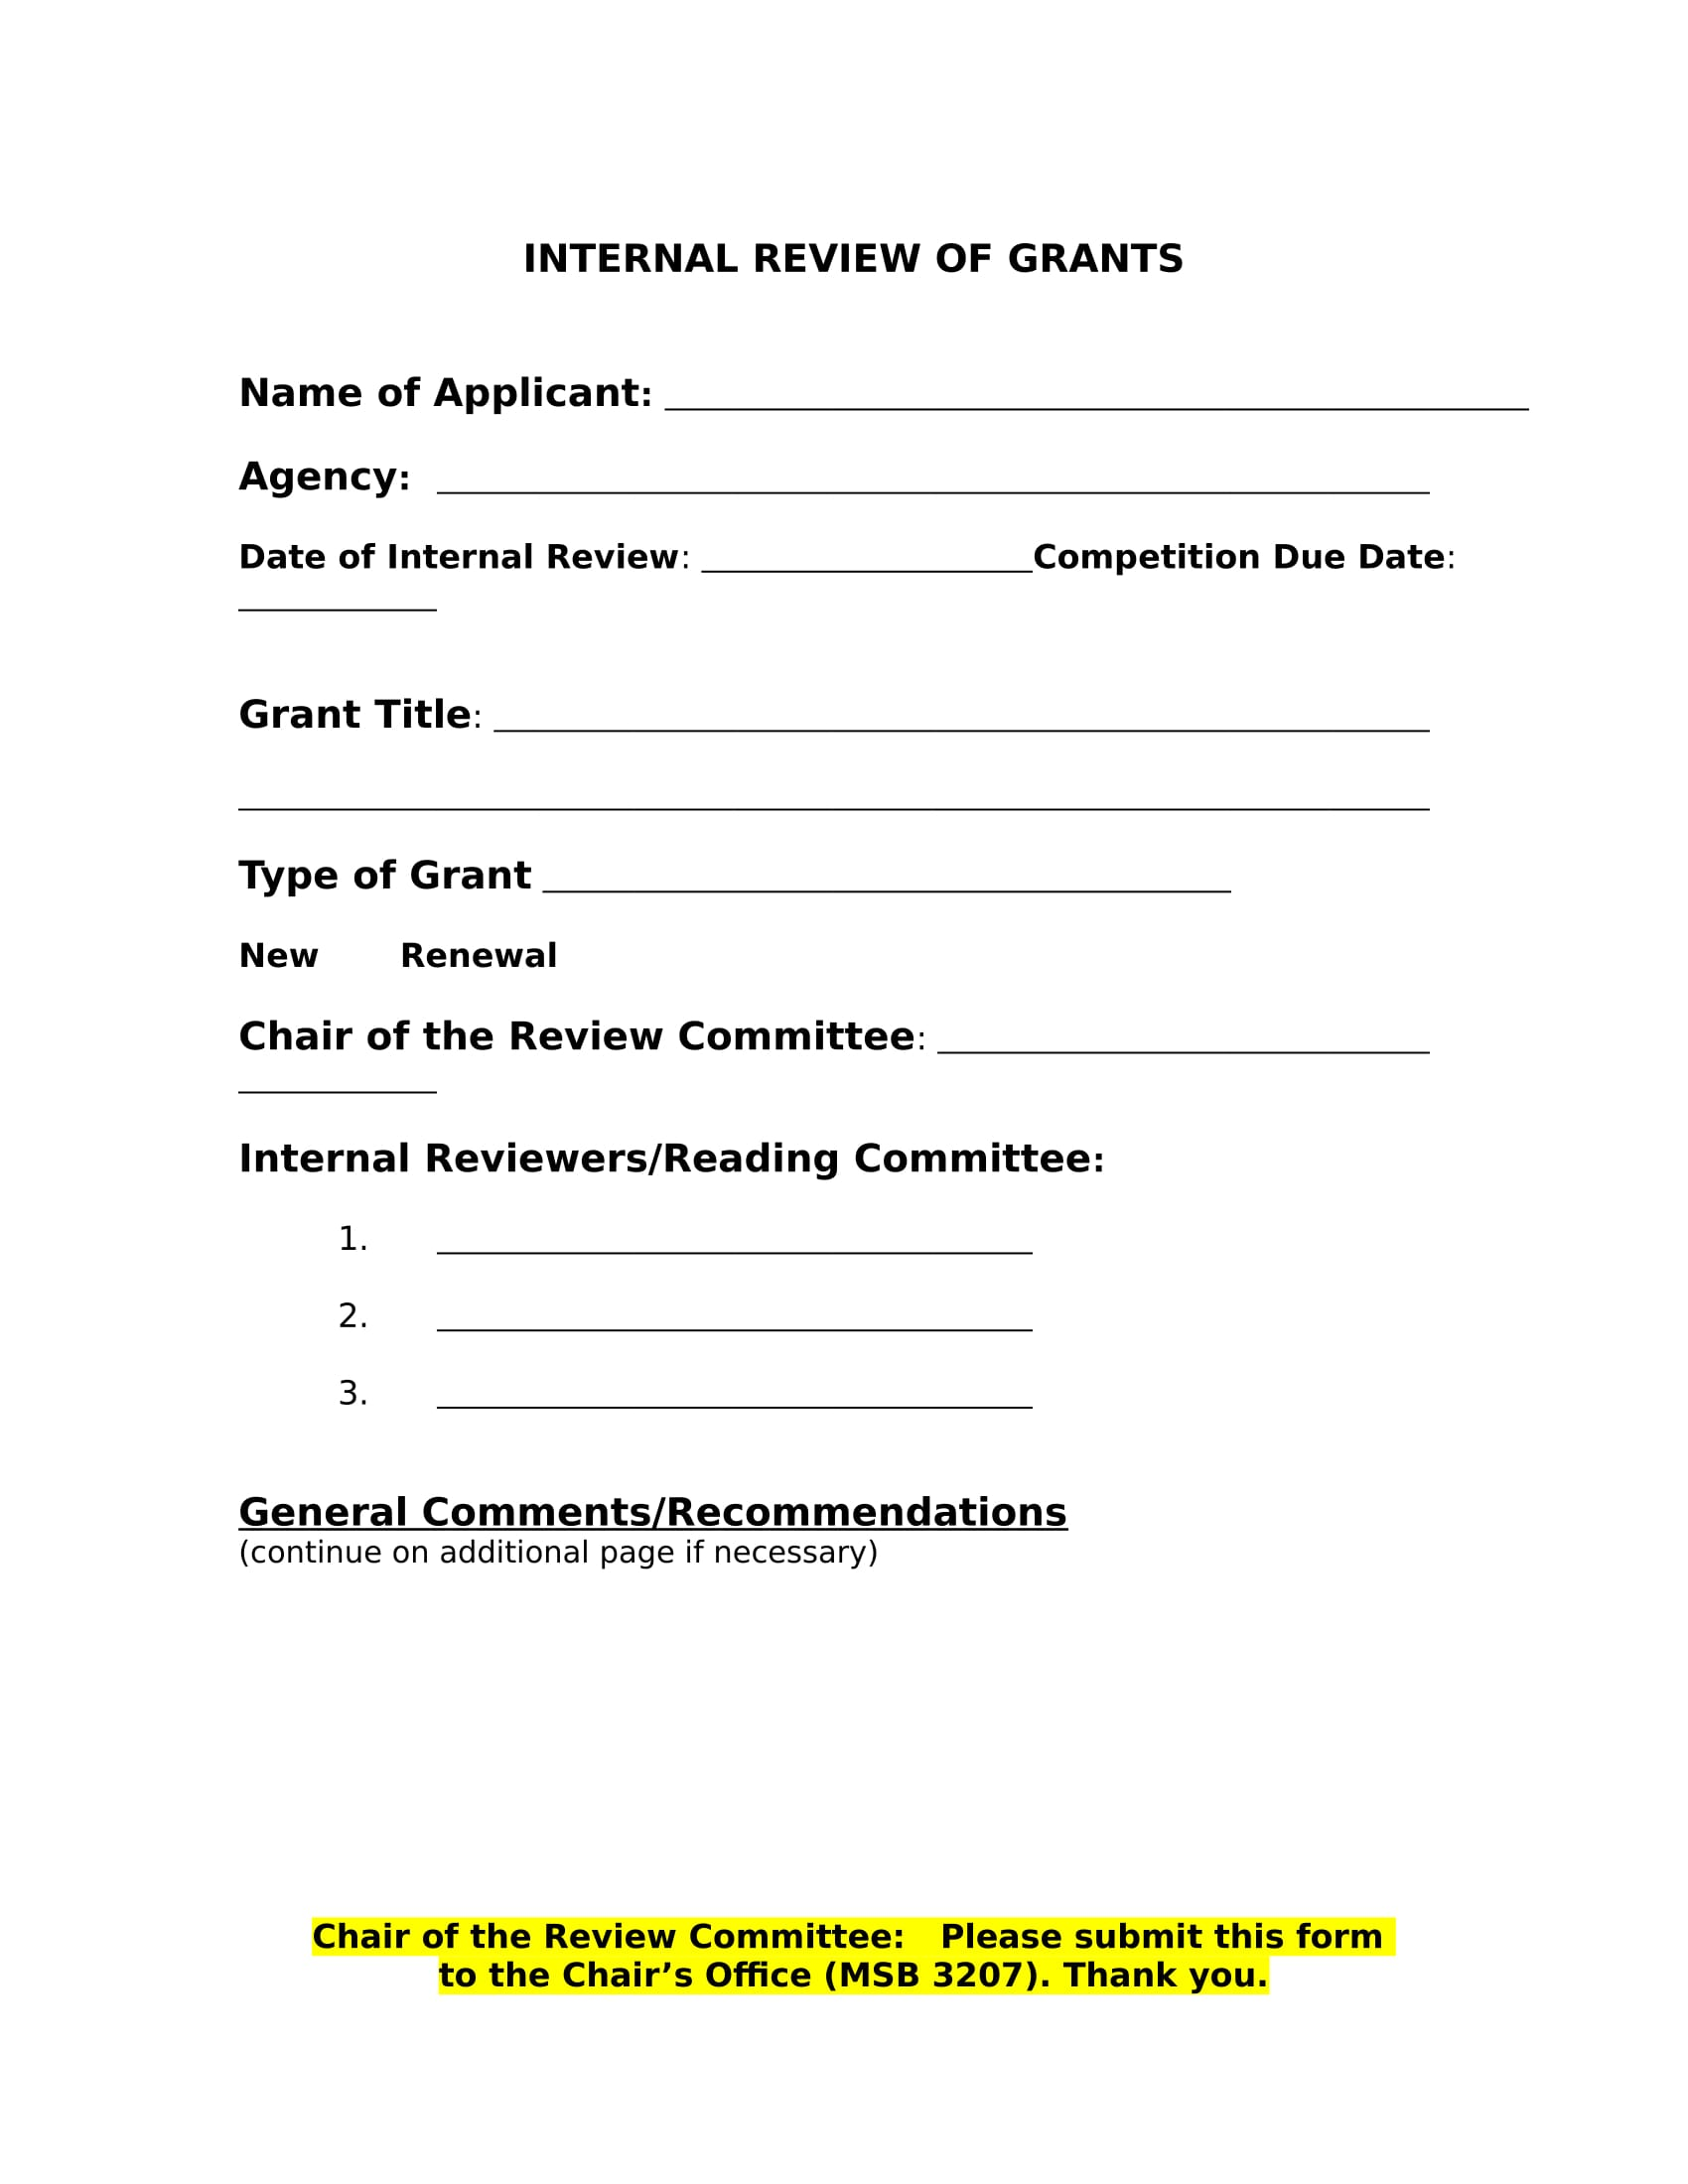 internal grant review forms 3